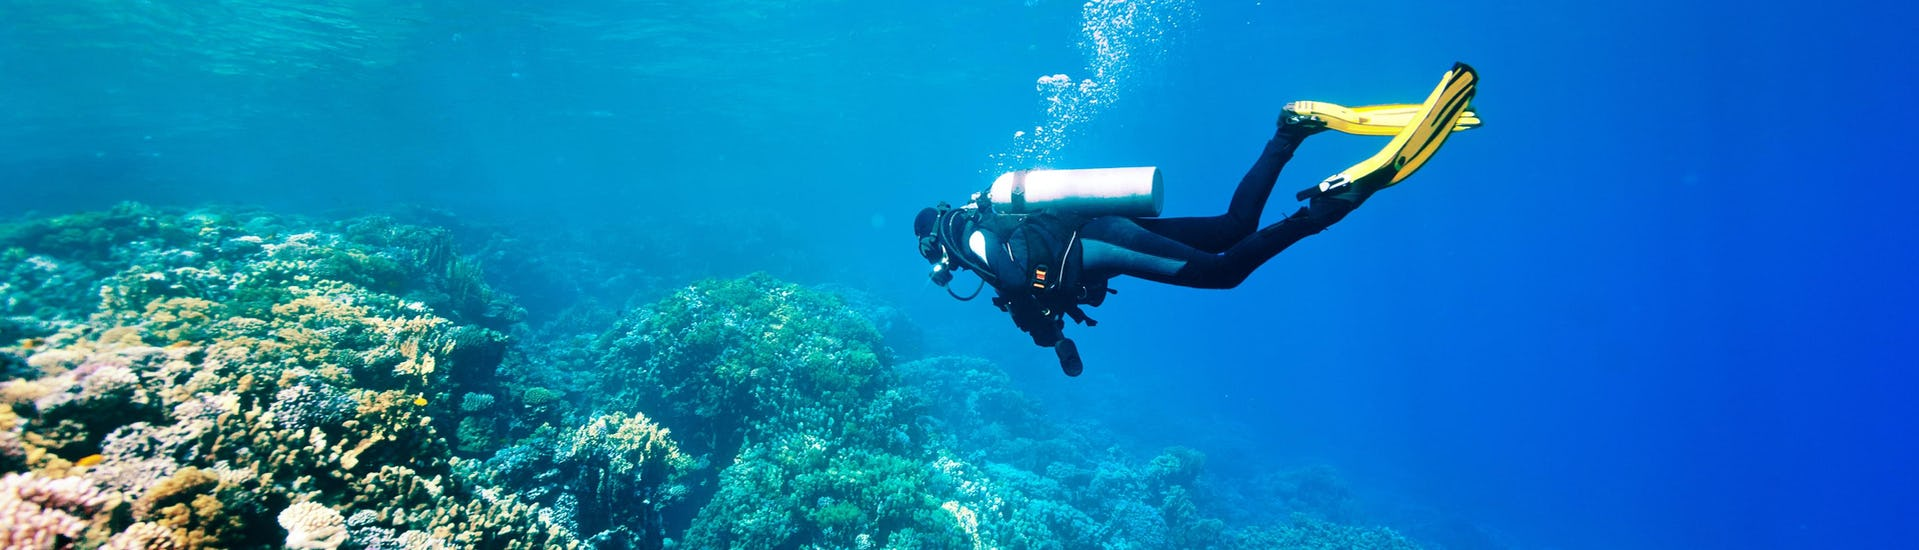 A scuba diver is exploring a reef while scuba diving in the scuba diving destination of Dubrovnik.